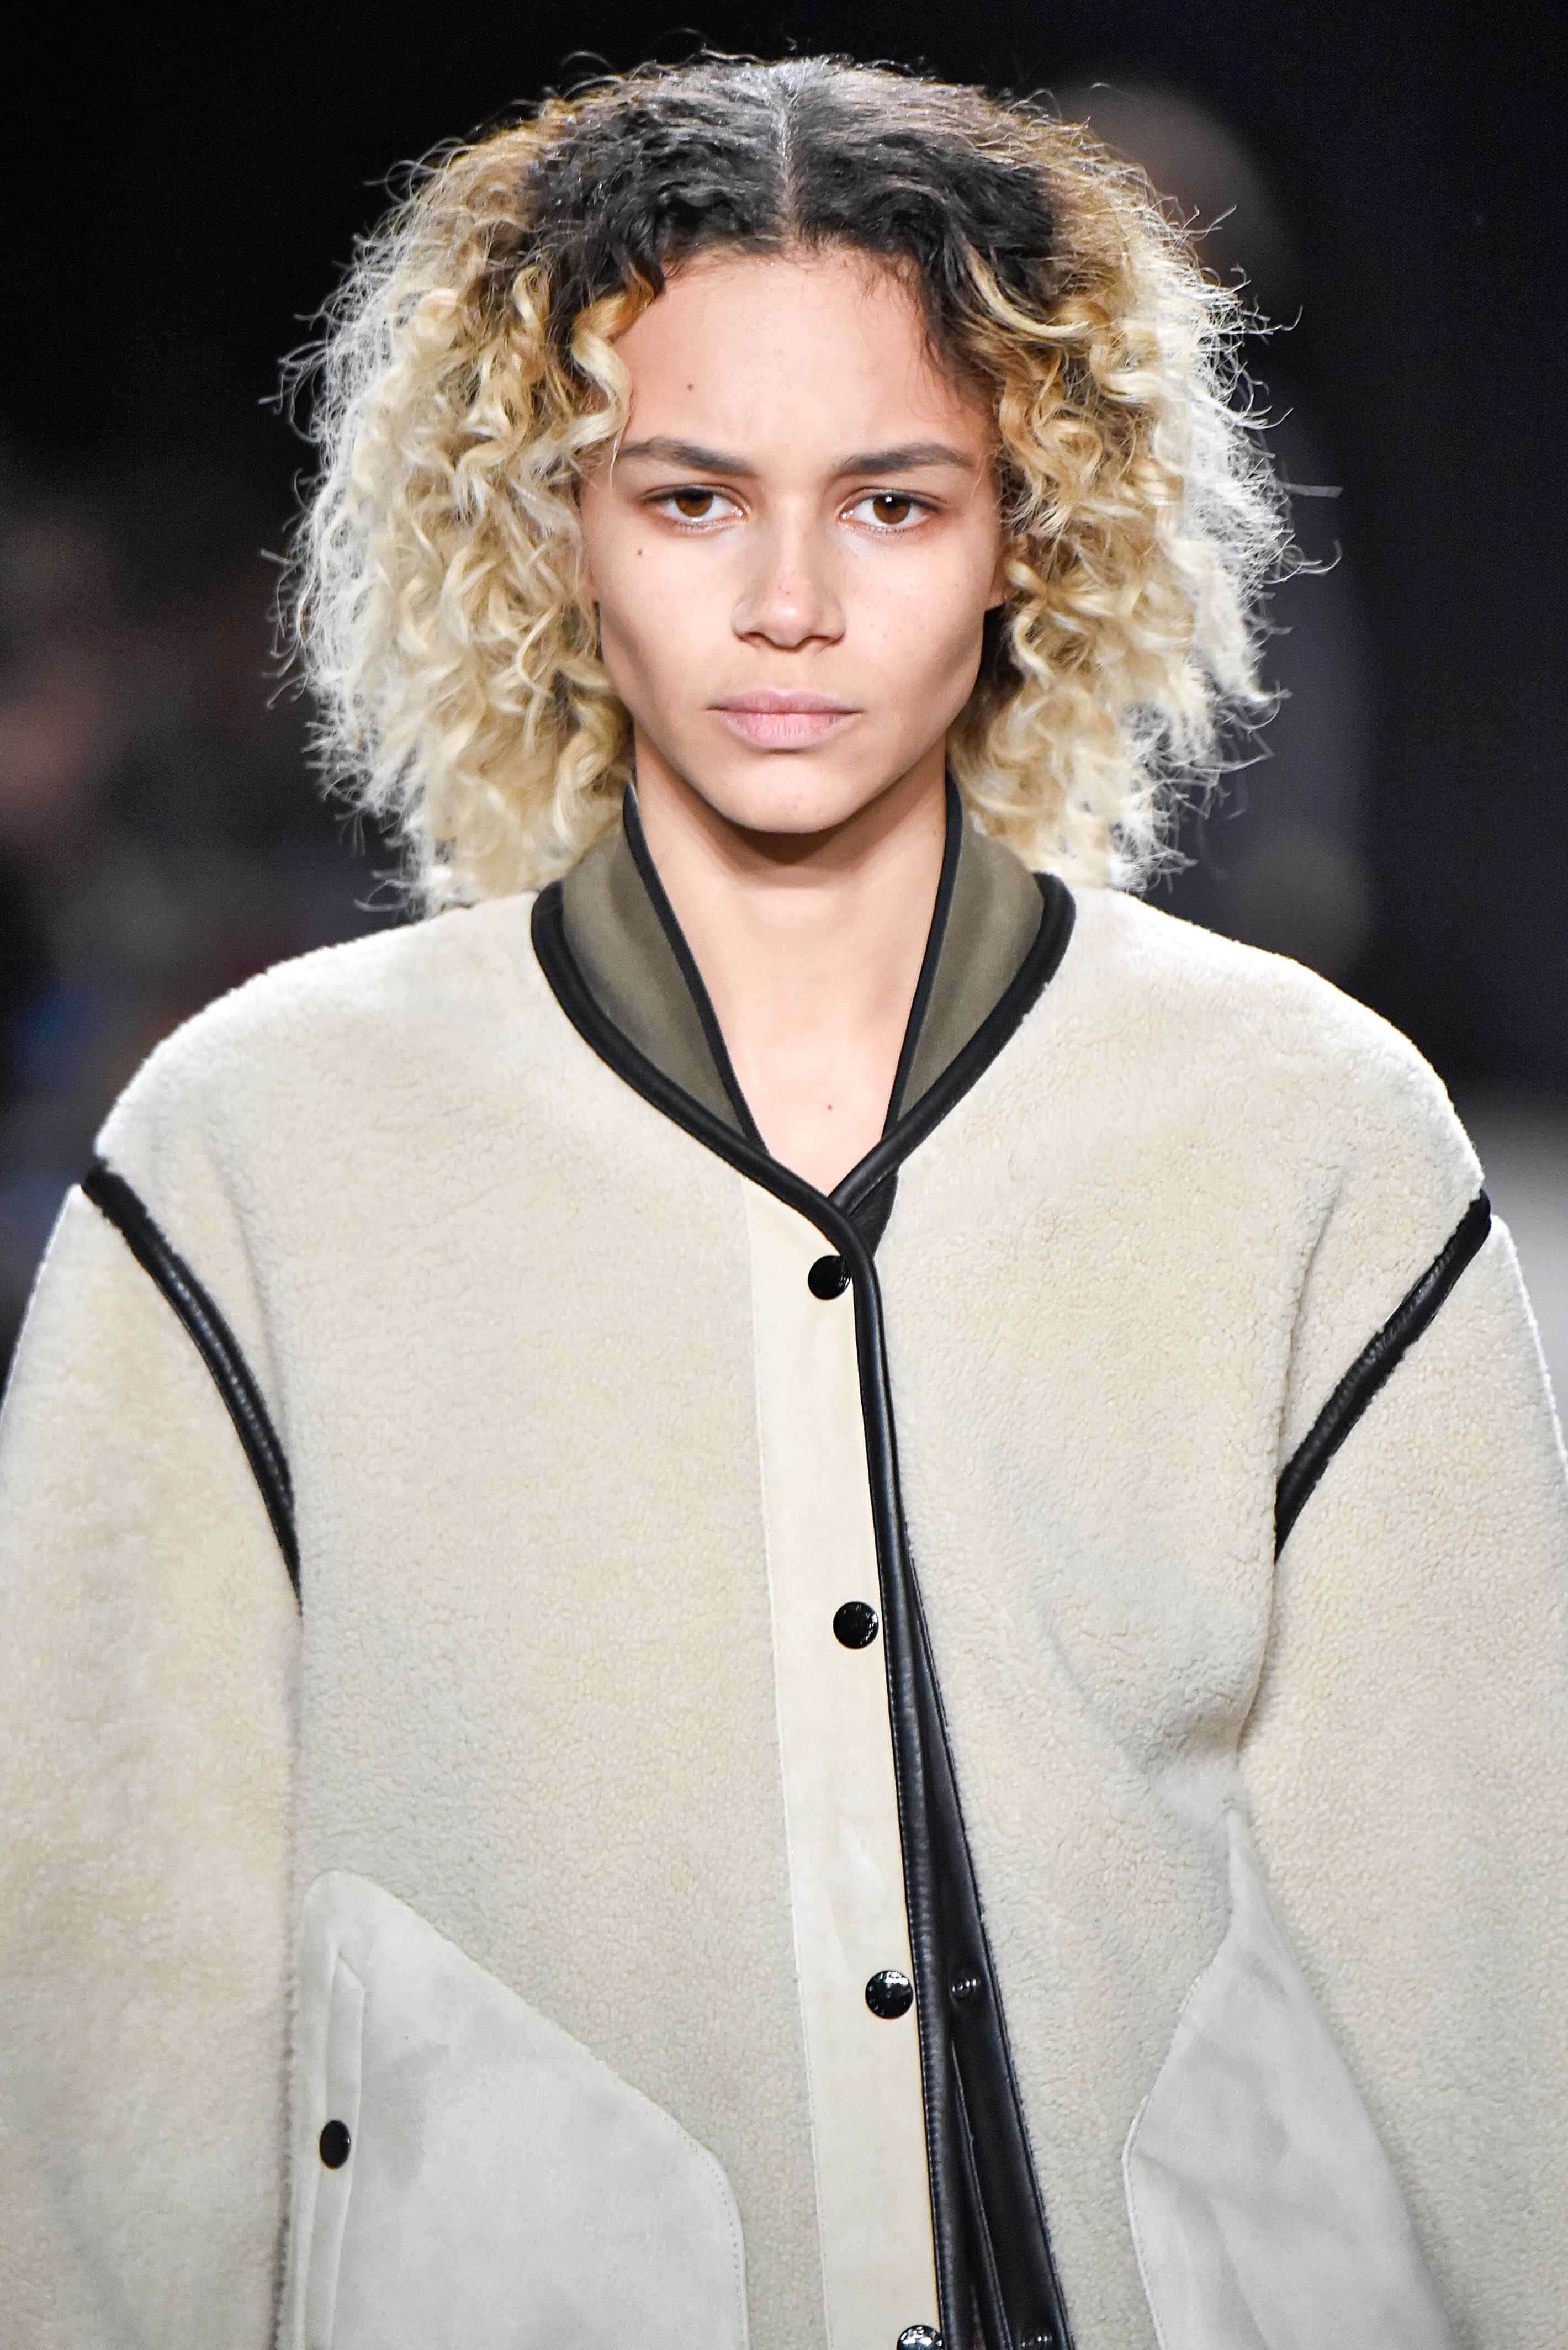 Shades of blonde hair: Woman with platinum blonde naturally curly hair with dark brown roots on runway wearing a bomber jacket.